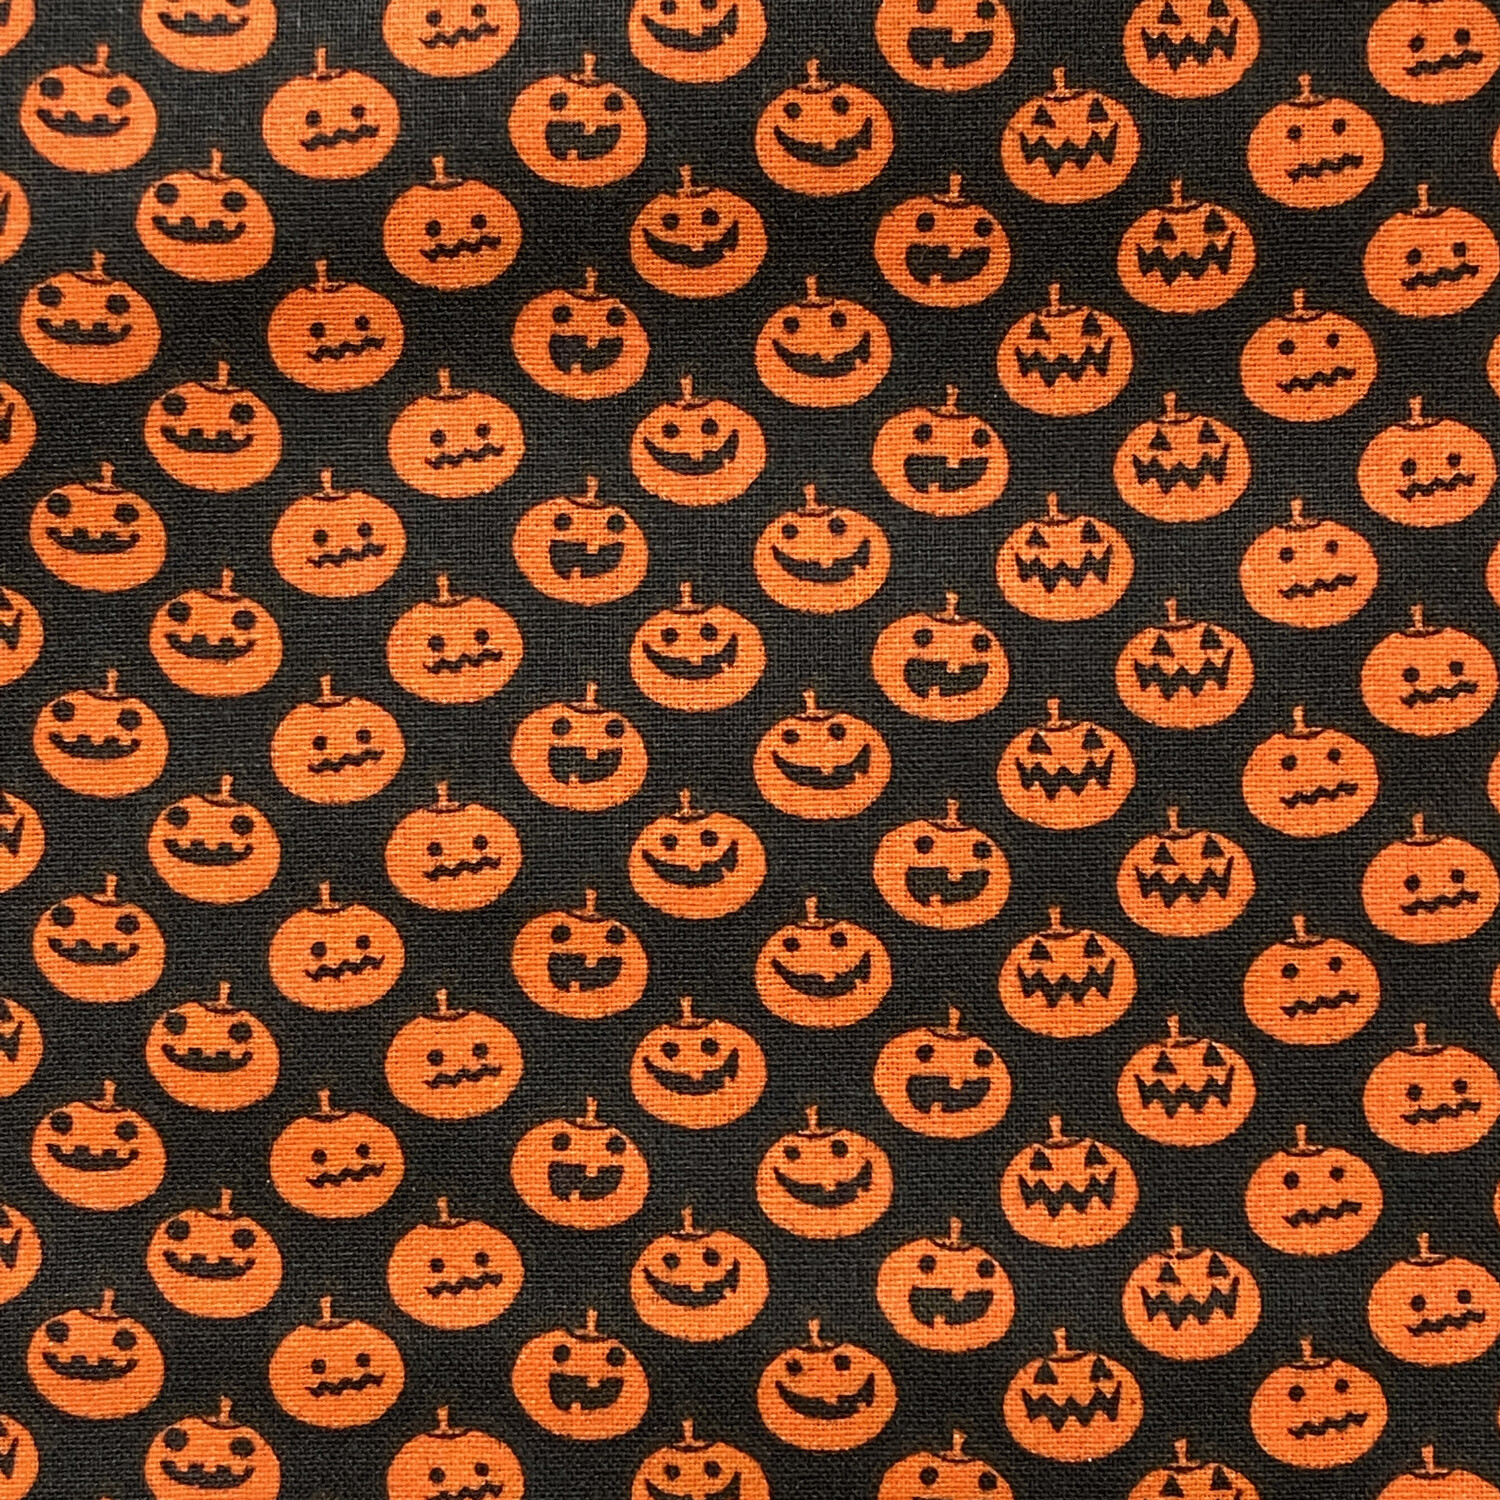 EasyFit Halloween Smiling Pumpkins Reusable Cloth Face Mask